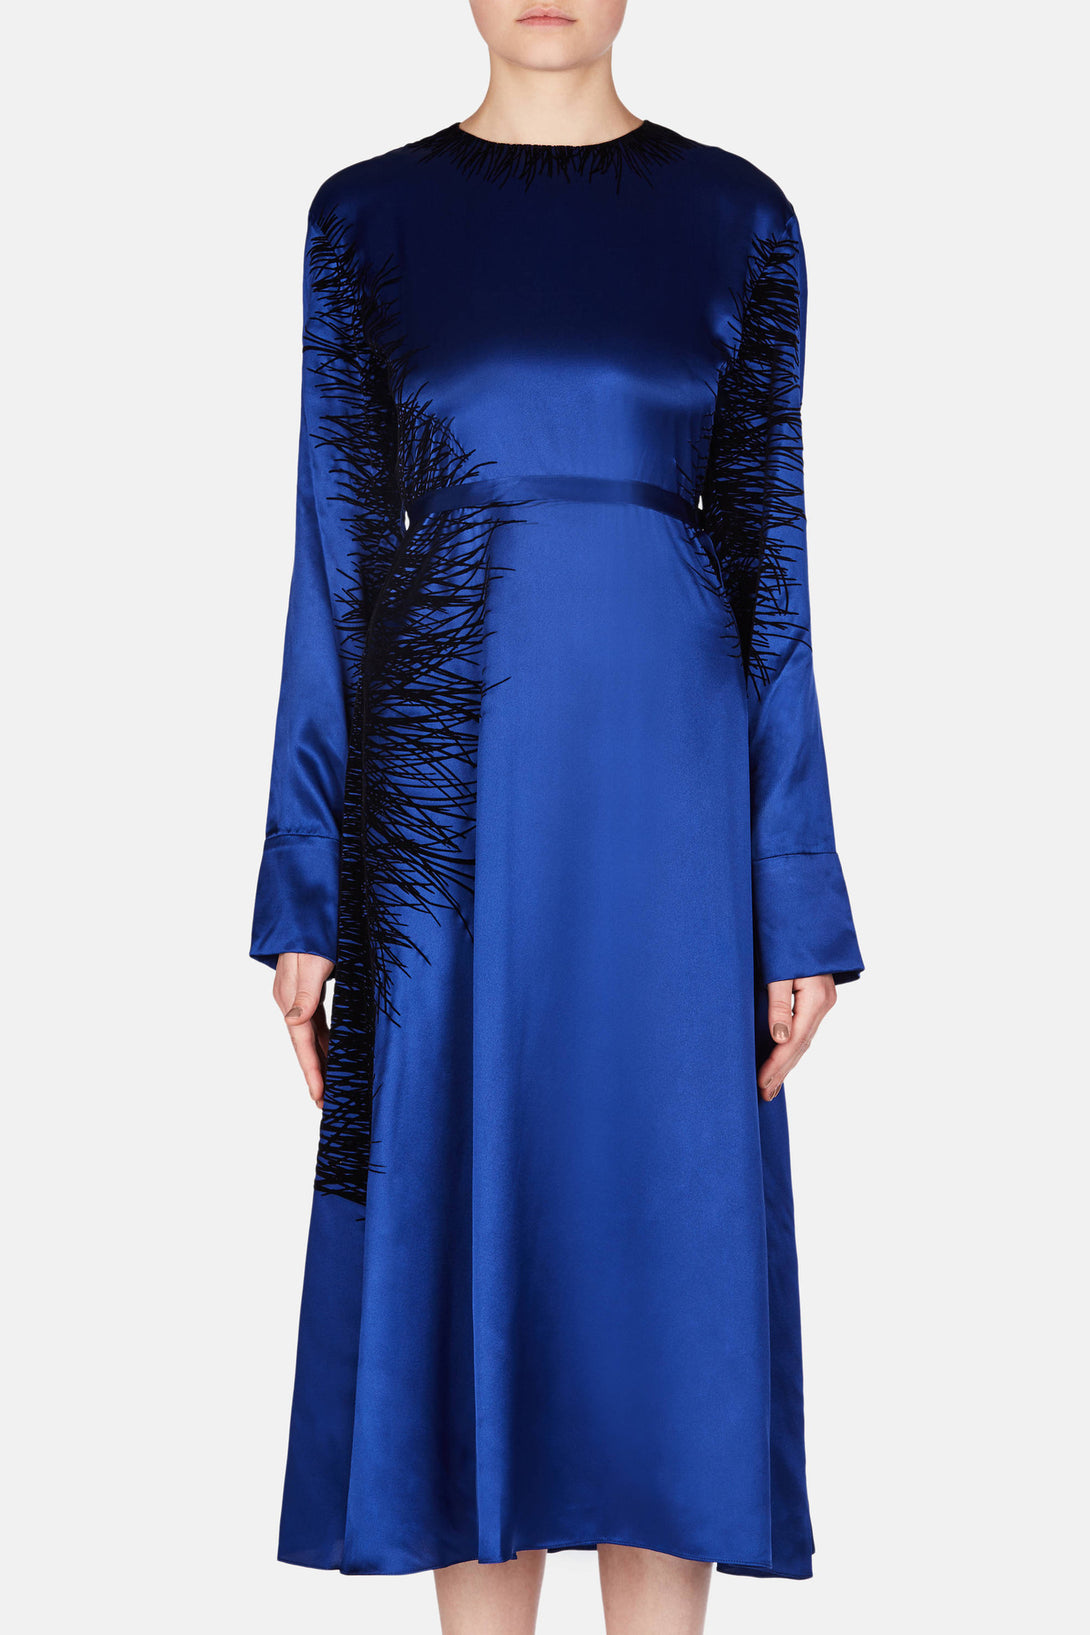 Dress with Flocked Feather Print - Royal Blue